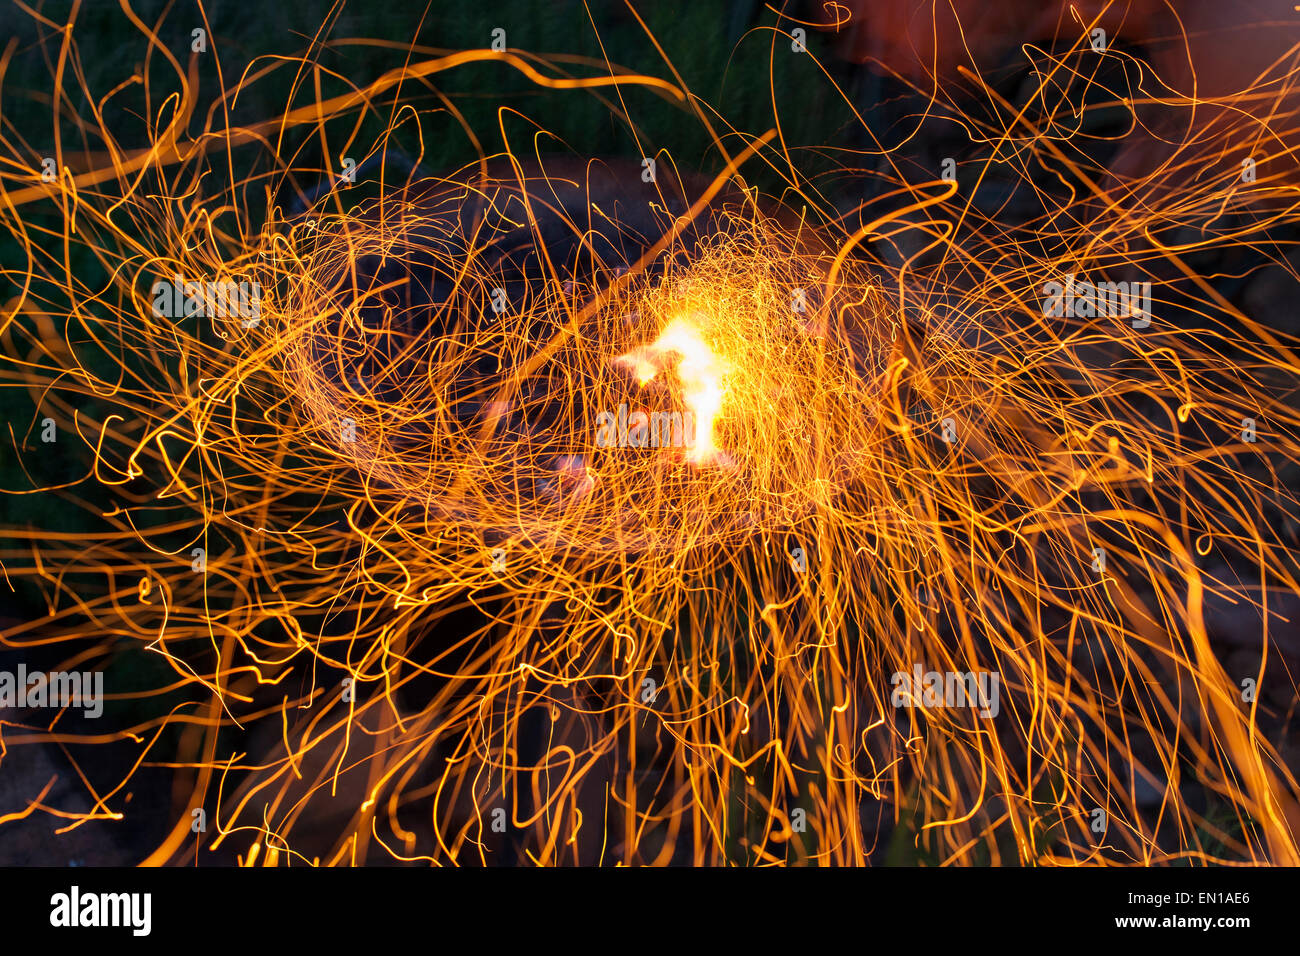 Long exposure of sparks flying off a barbecue fire. - Stock Image